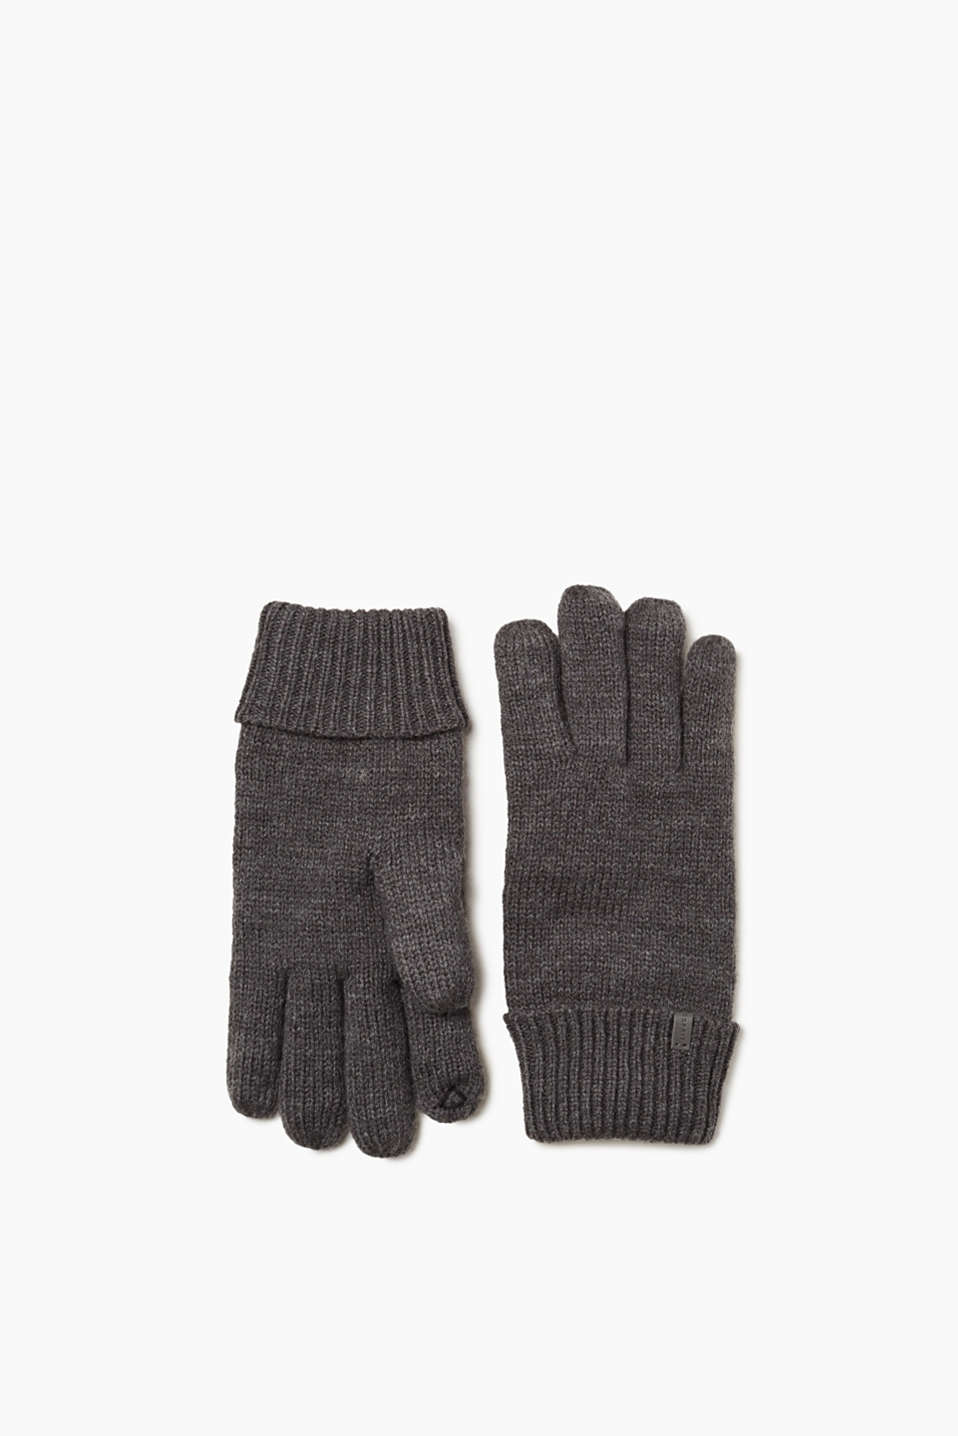 Perfect for cold winter days! These knitted gloves are perfectly insulated with Thinsulate technology.